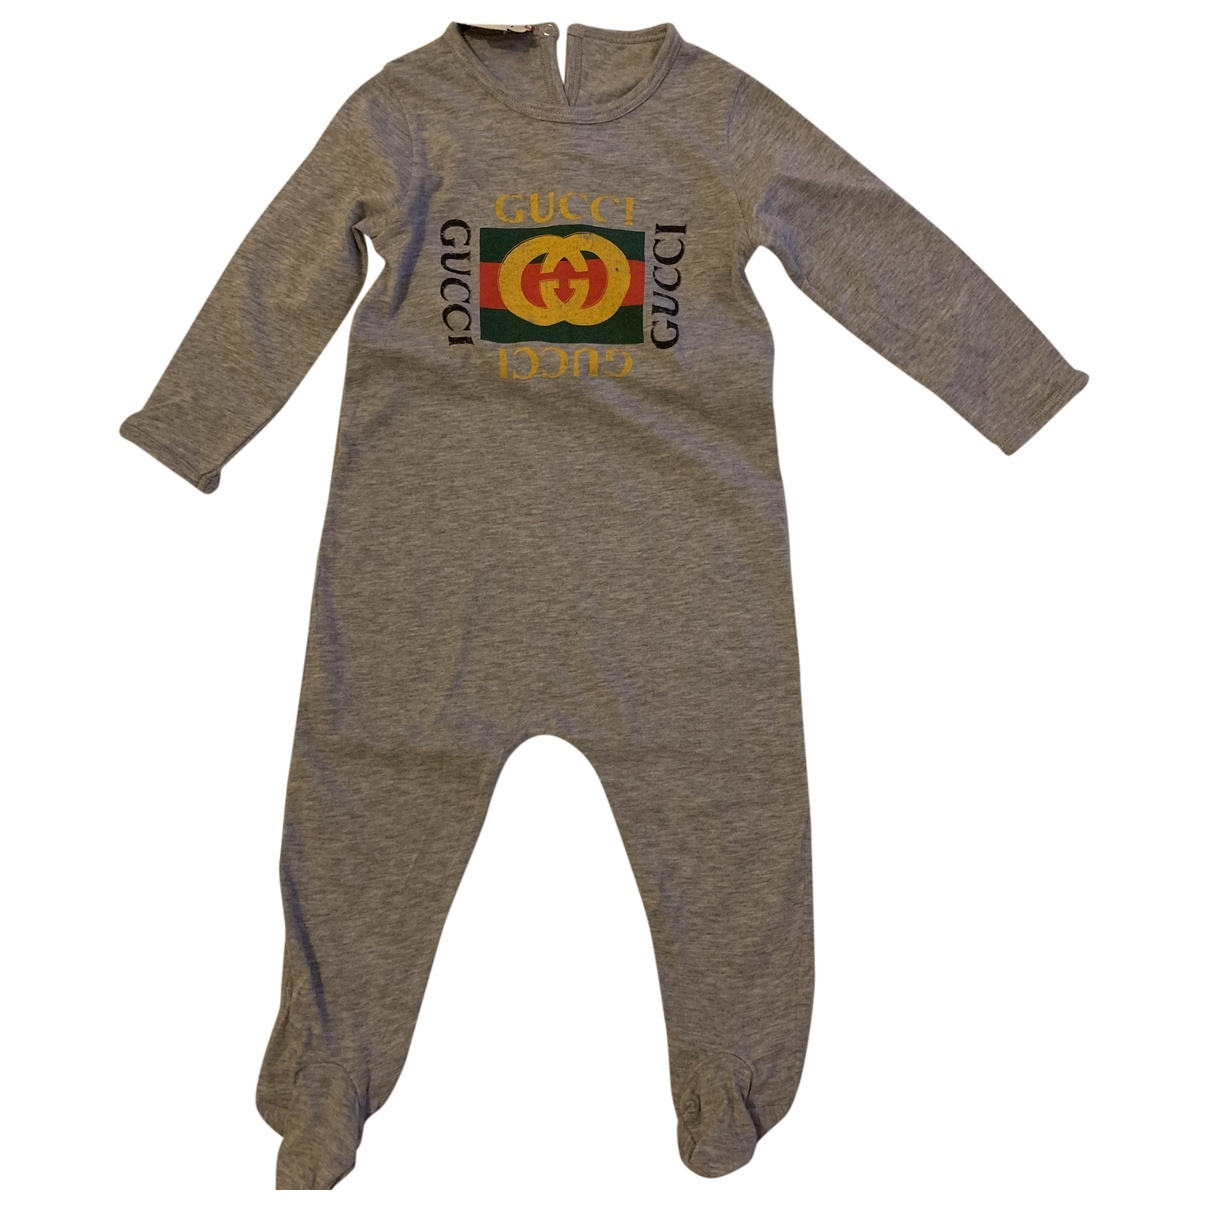 Gucci \N Grey Cotton Outfits for Kids 9 months - up to 71cm FR